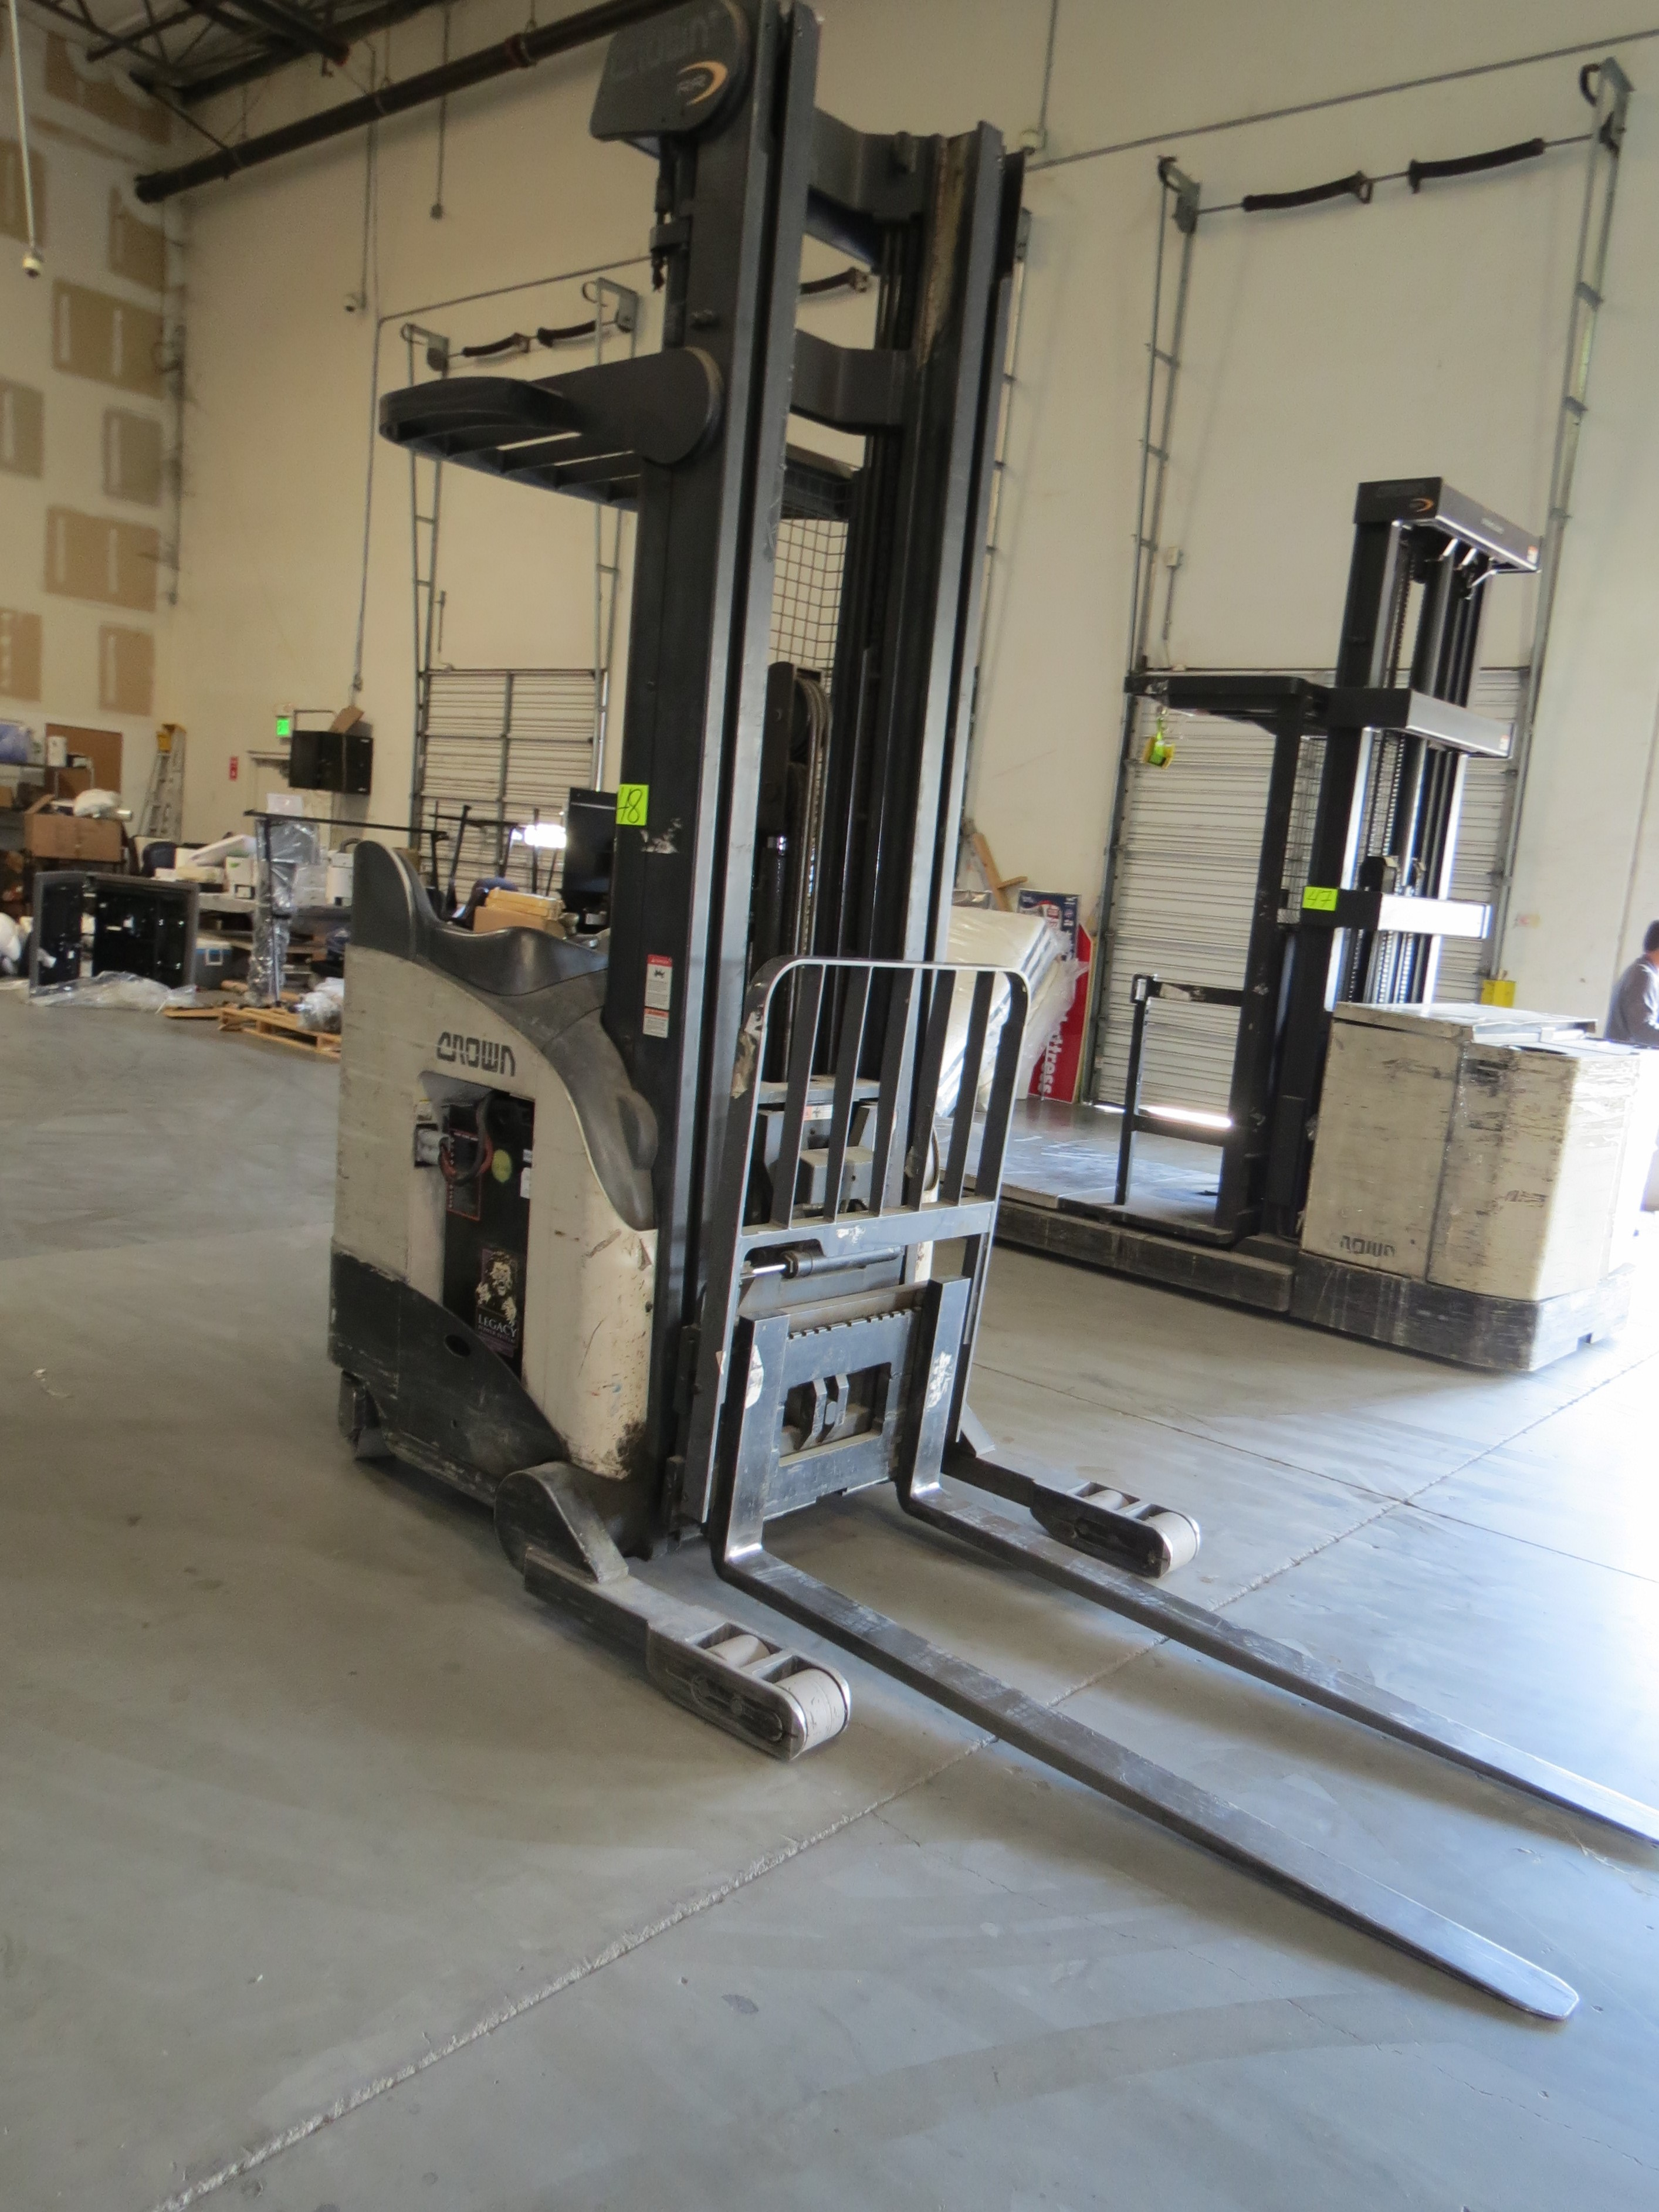 Crown RR 3-Stage Reach Electric Forklift 6860 Capacity SN:1A292256 With Legacy Power System - Image 2 of 4